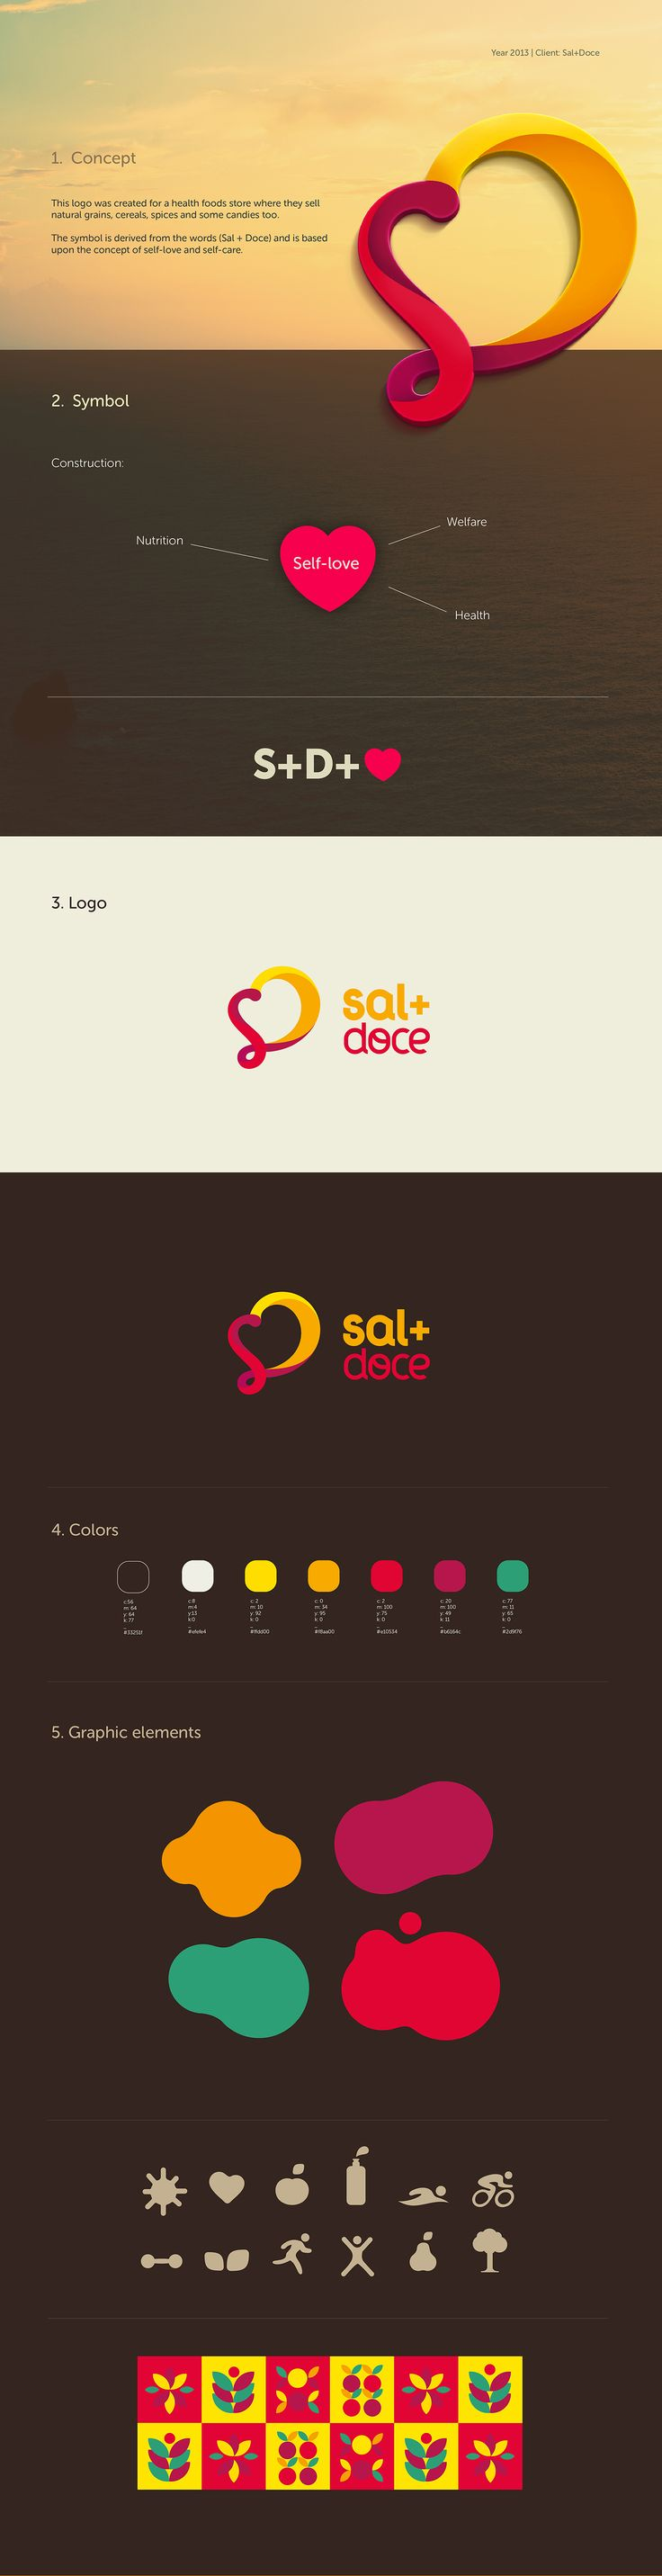 This logo was created for a health foods store where they sell natural grains, cereals, spices and some candies too. The symbol is derived from the words (Sal + Doce) and is based upon the concept of self-love and self-care.